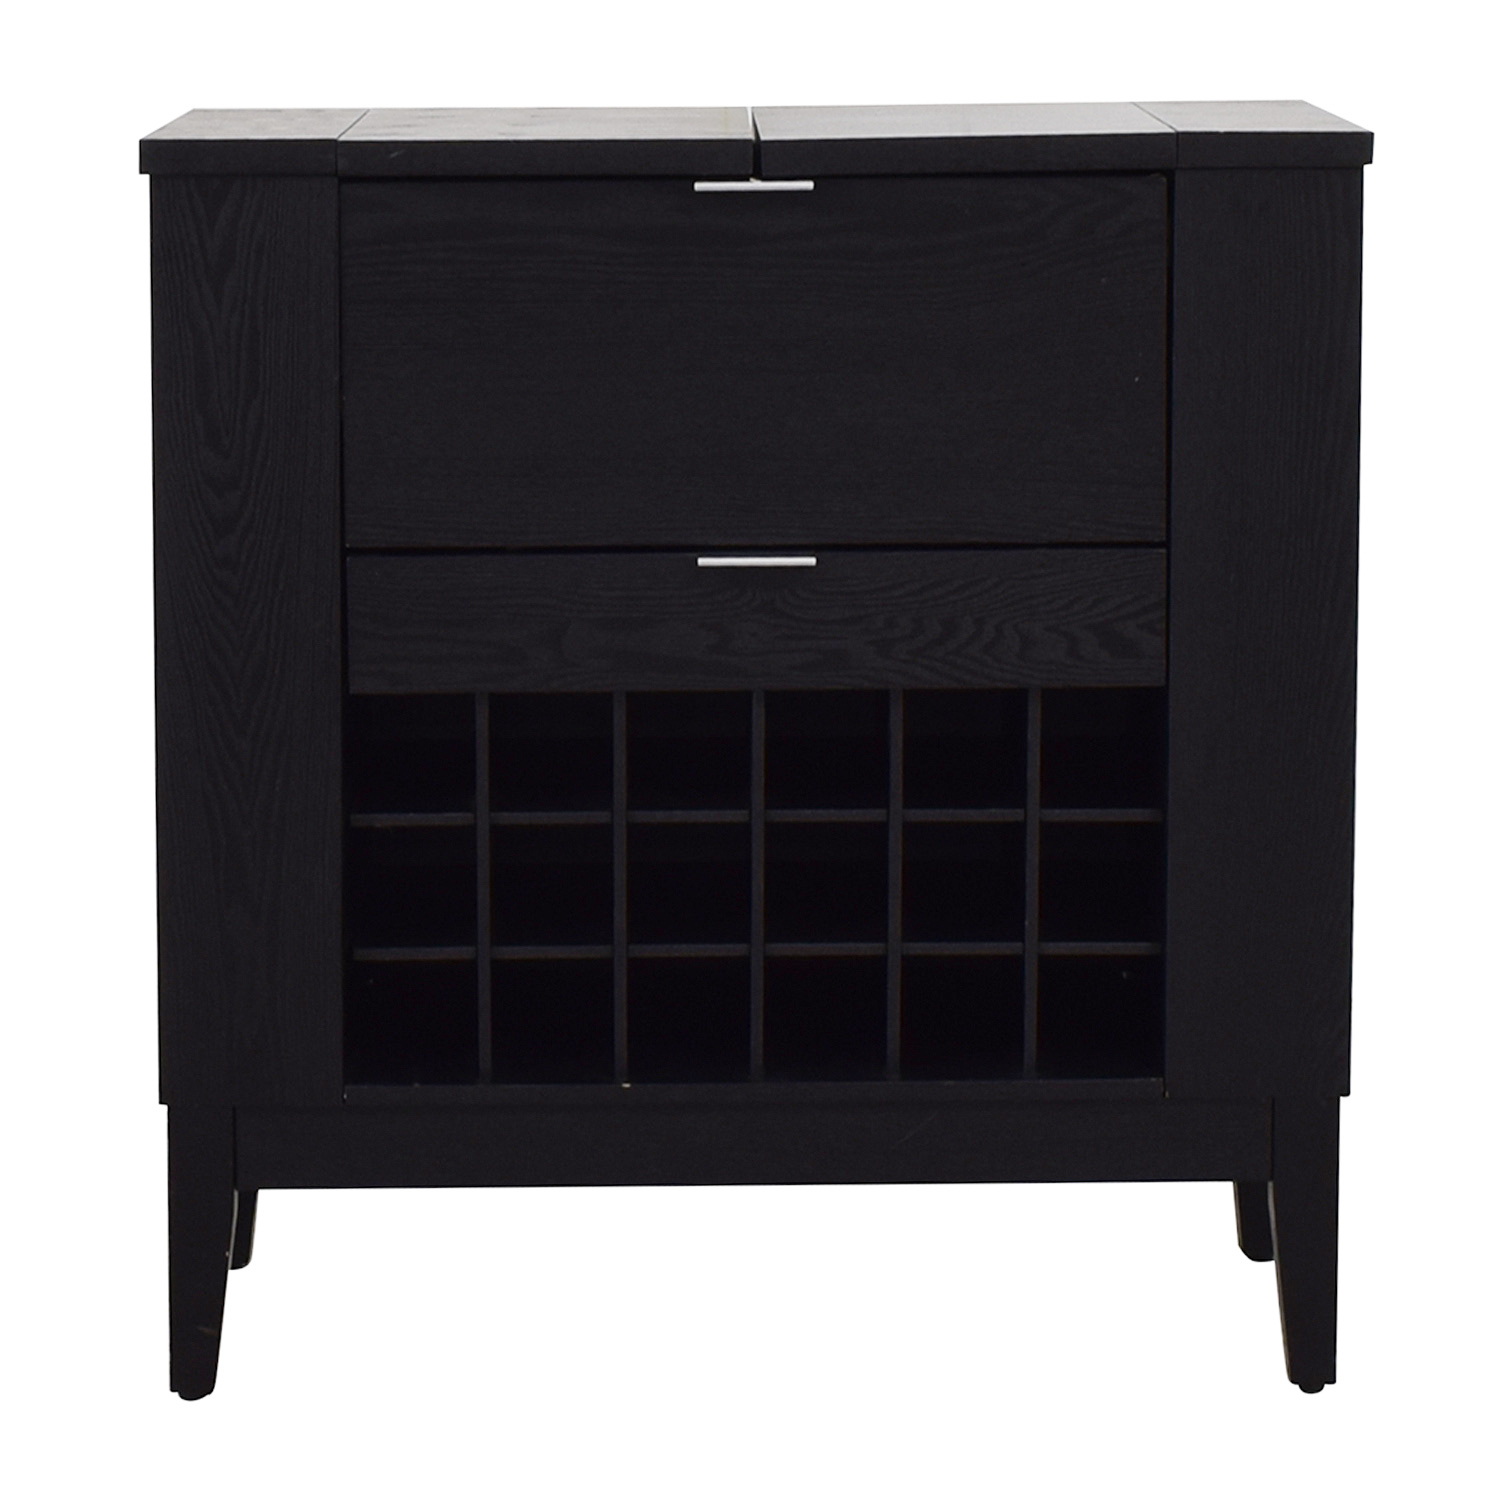 Crate & Barrel Crate & Barrel Parker Spirits Bourbon Cabinet